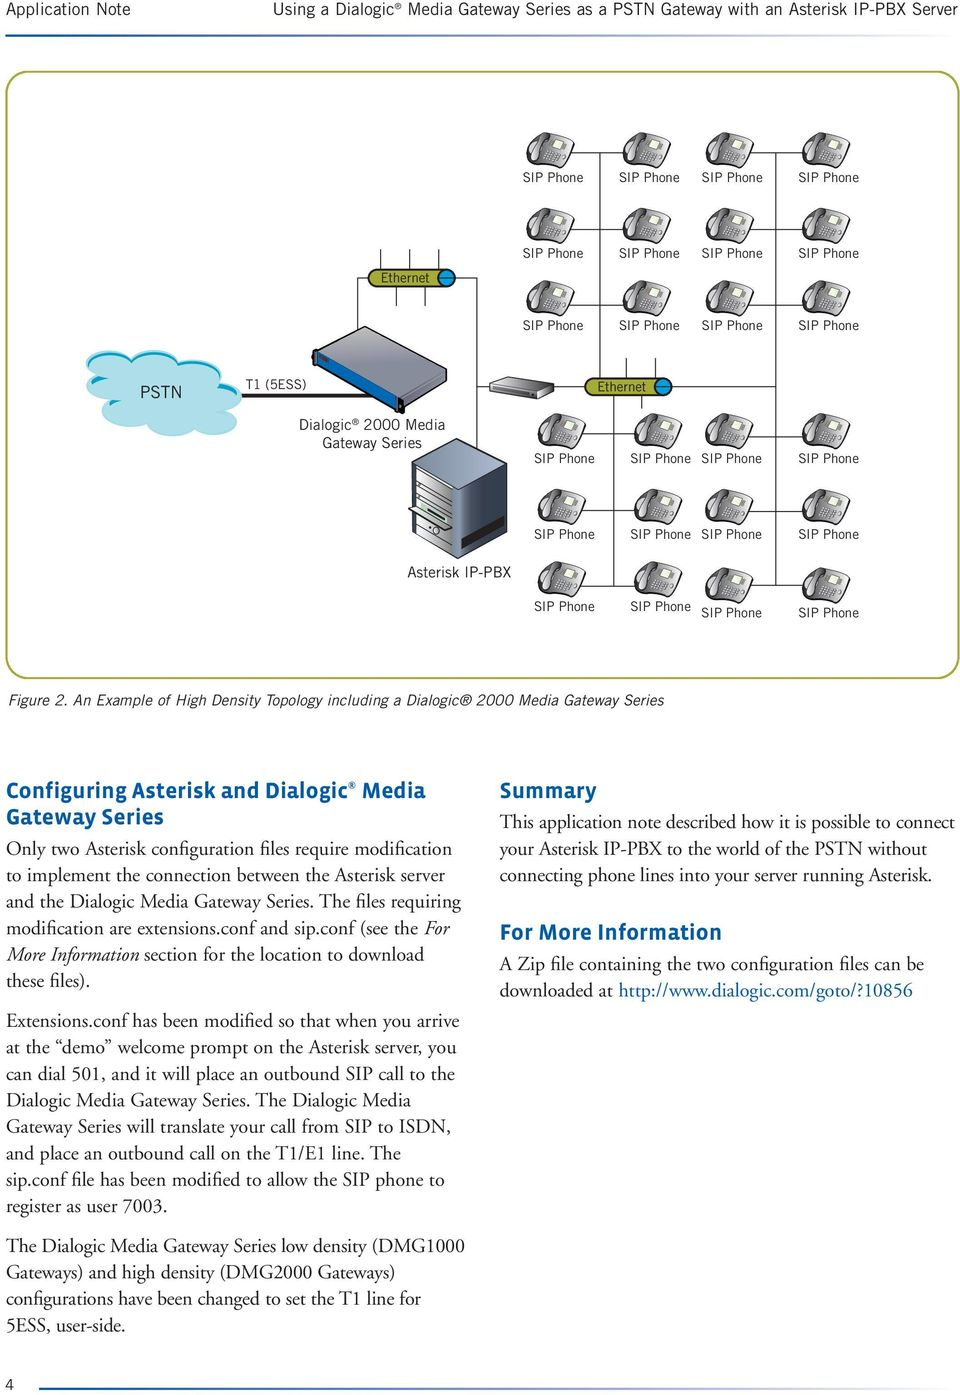 Application Note  Using a Dialogic Media Gateway Series as a PSTN